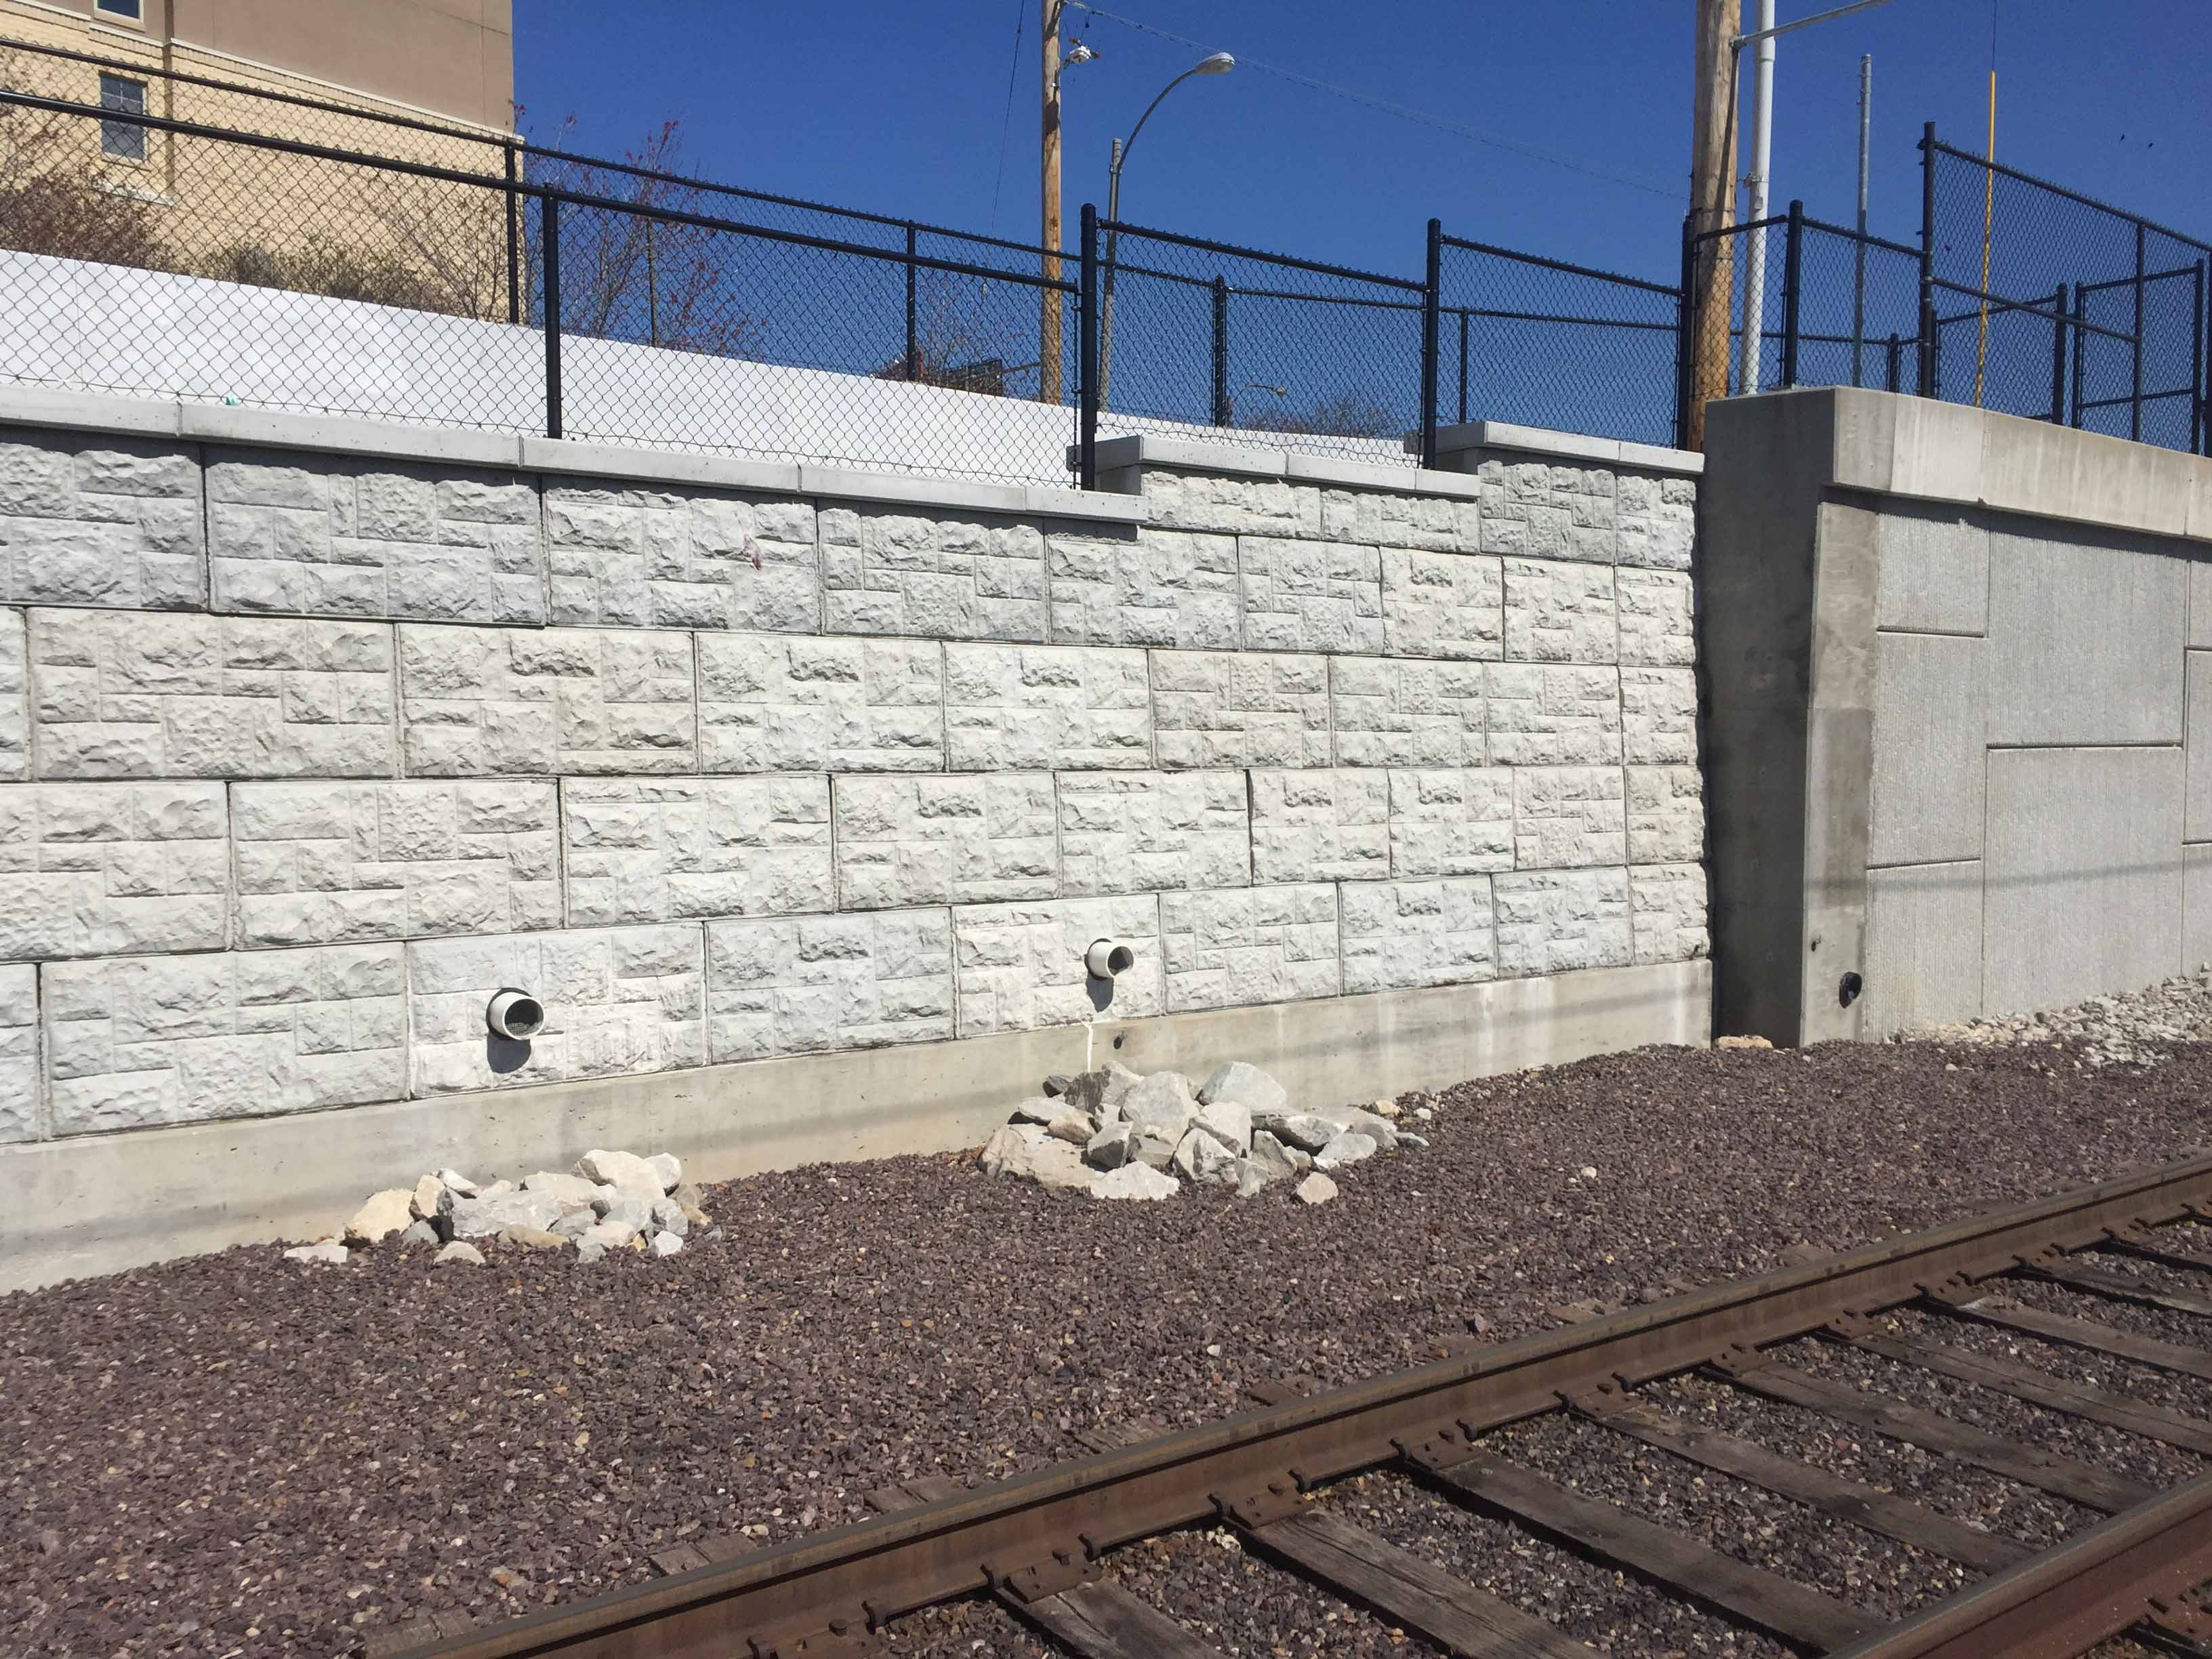 MaxumStone castle face retaining wall in st louis missouri with good drainage